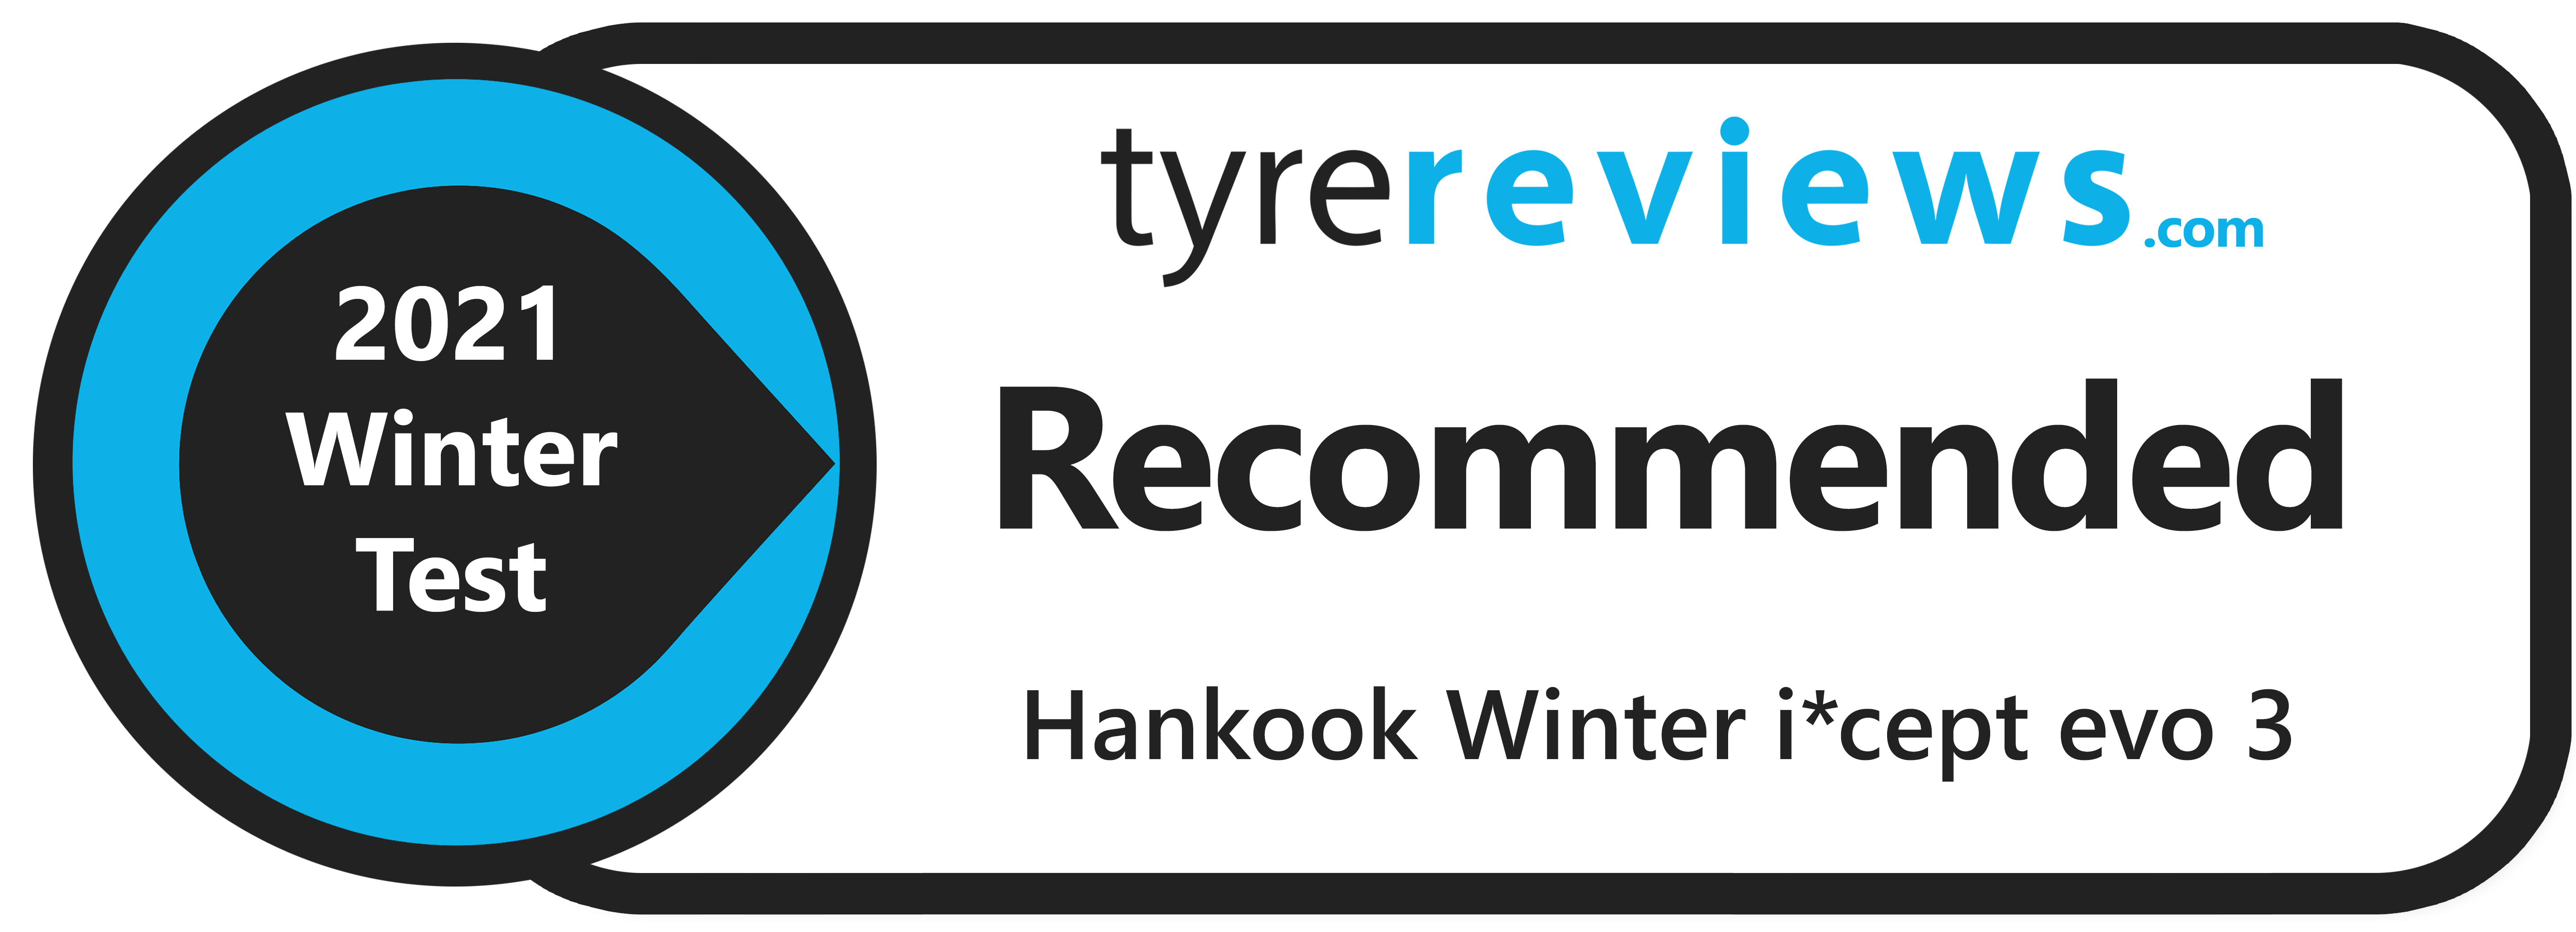 Recommended Hankook 2021